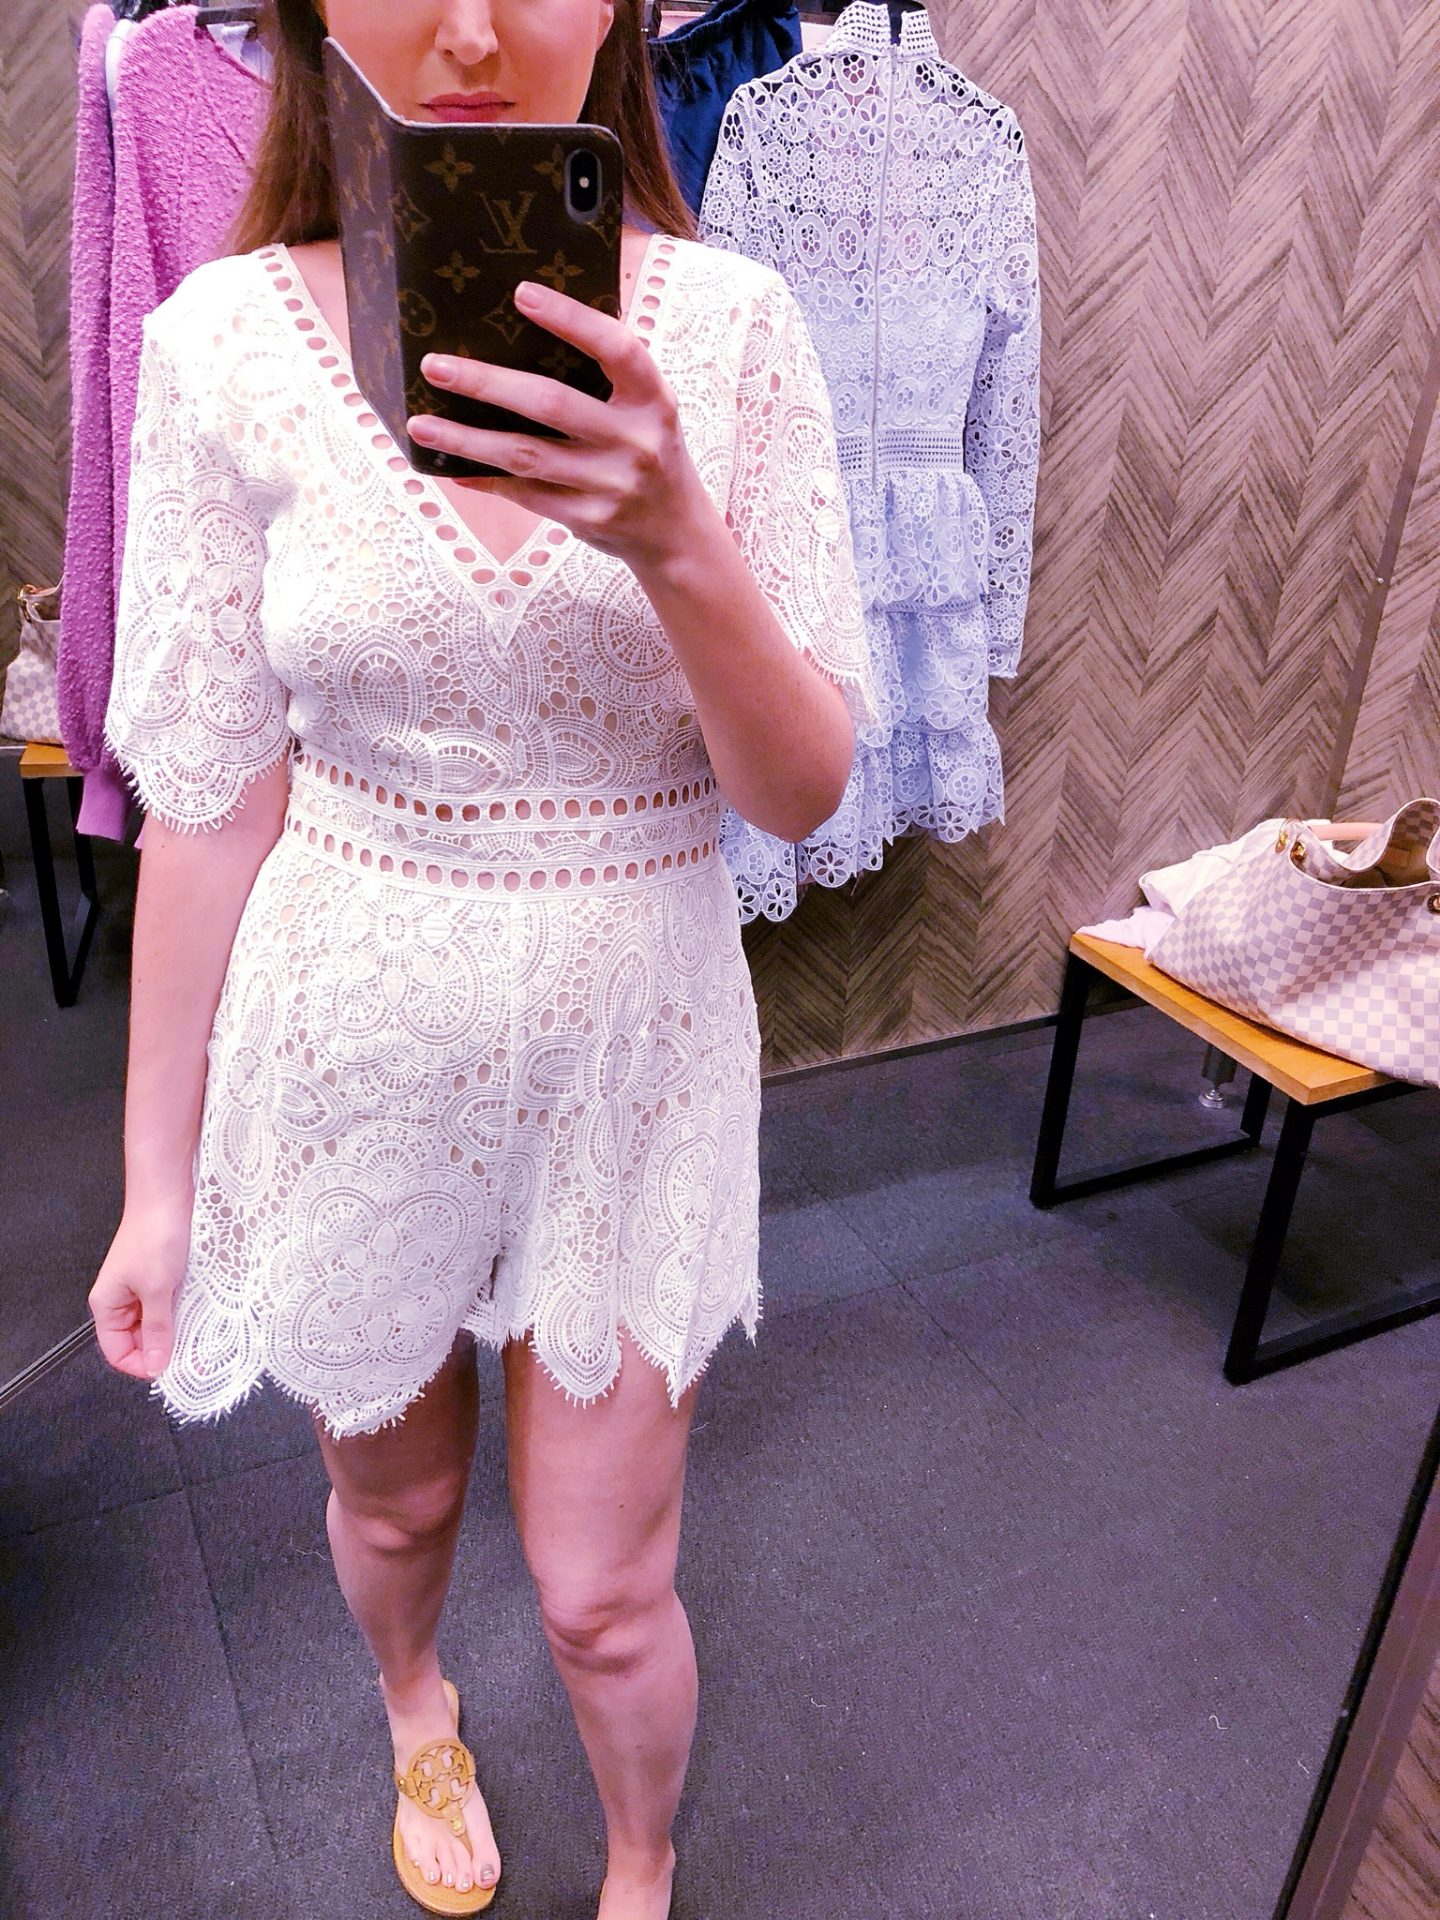 socialite lace romper, white lace romper, Nordstrom sale lace cami, Nordstrom anniversary sale, Nordstrom anniversary sale 2018, Nordstrom anniversary sale haul, Nordstrom anniversary sale dressing room try-on